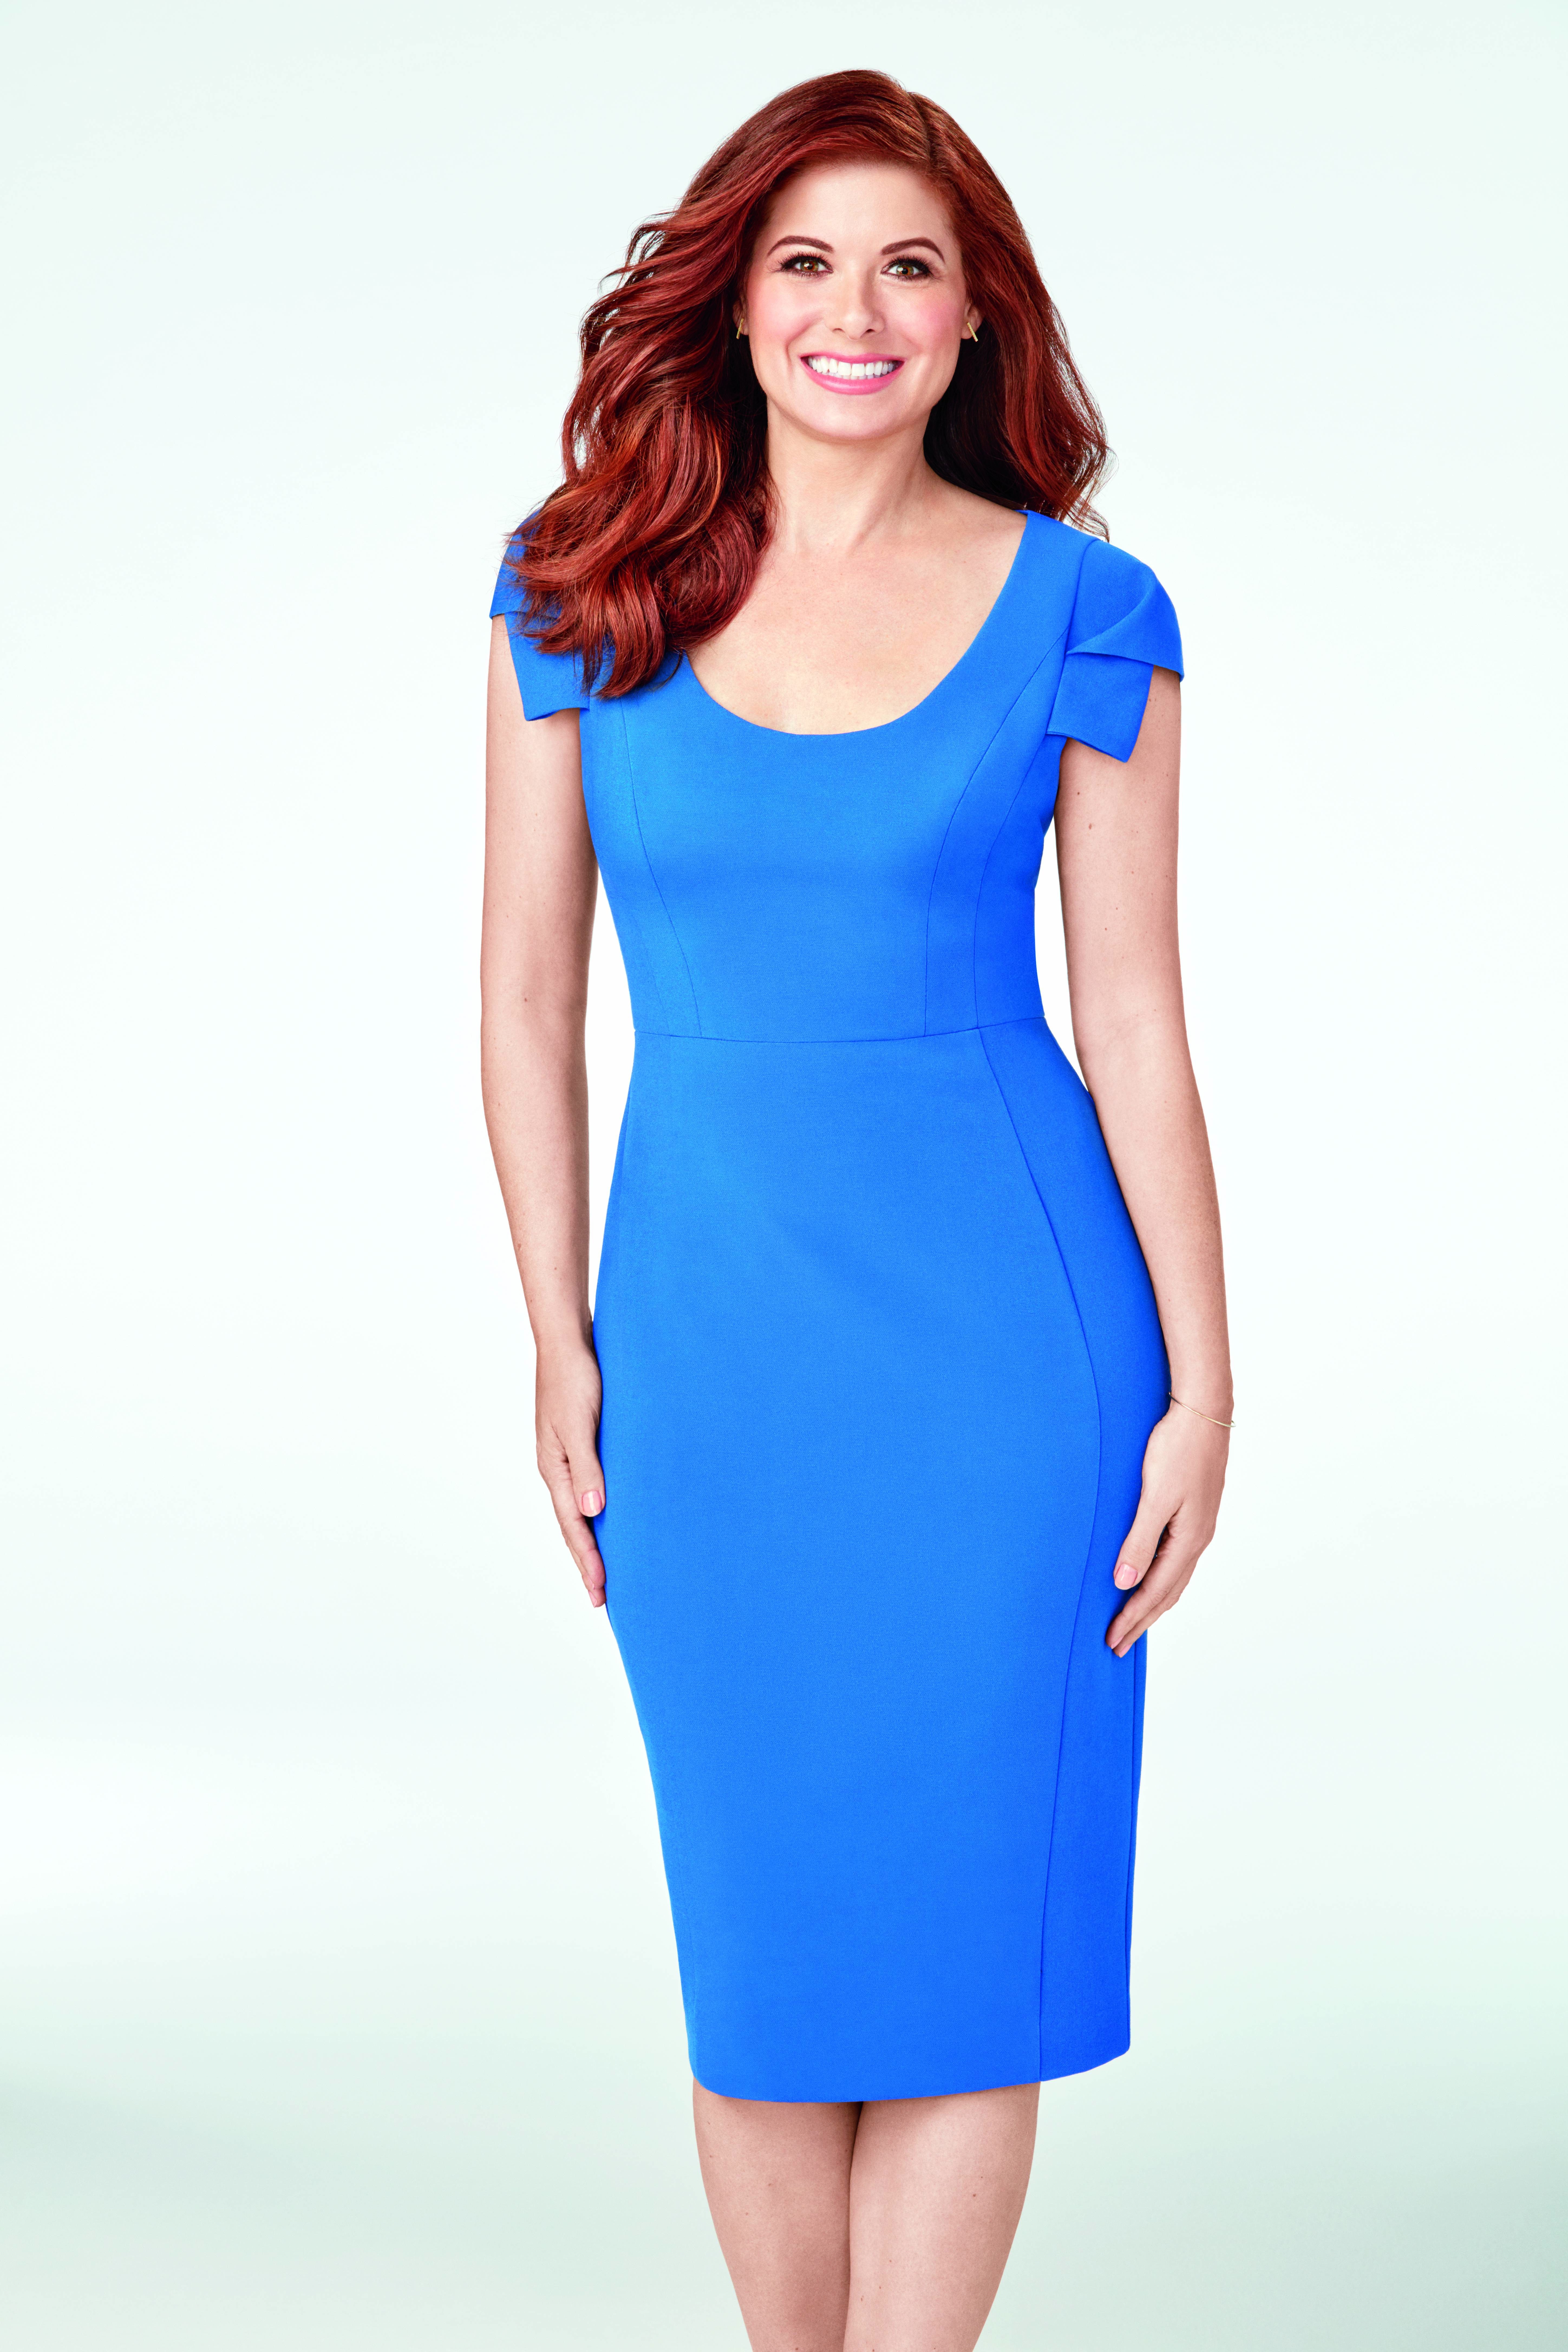 Actress Debra Messing Named Global Brand Ambassador for Non-Invasive, Fat-Freezing Treatment